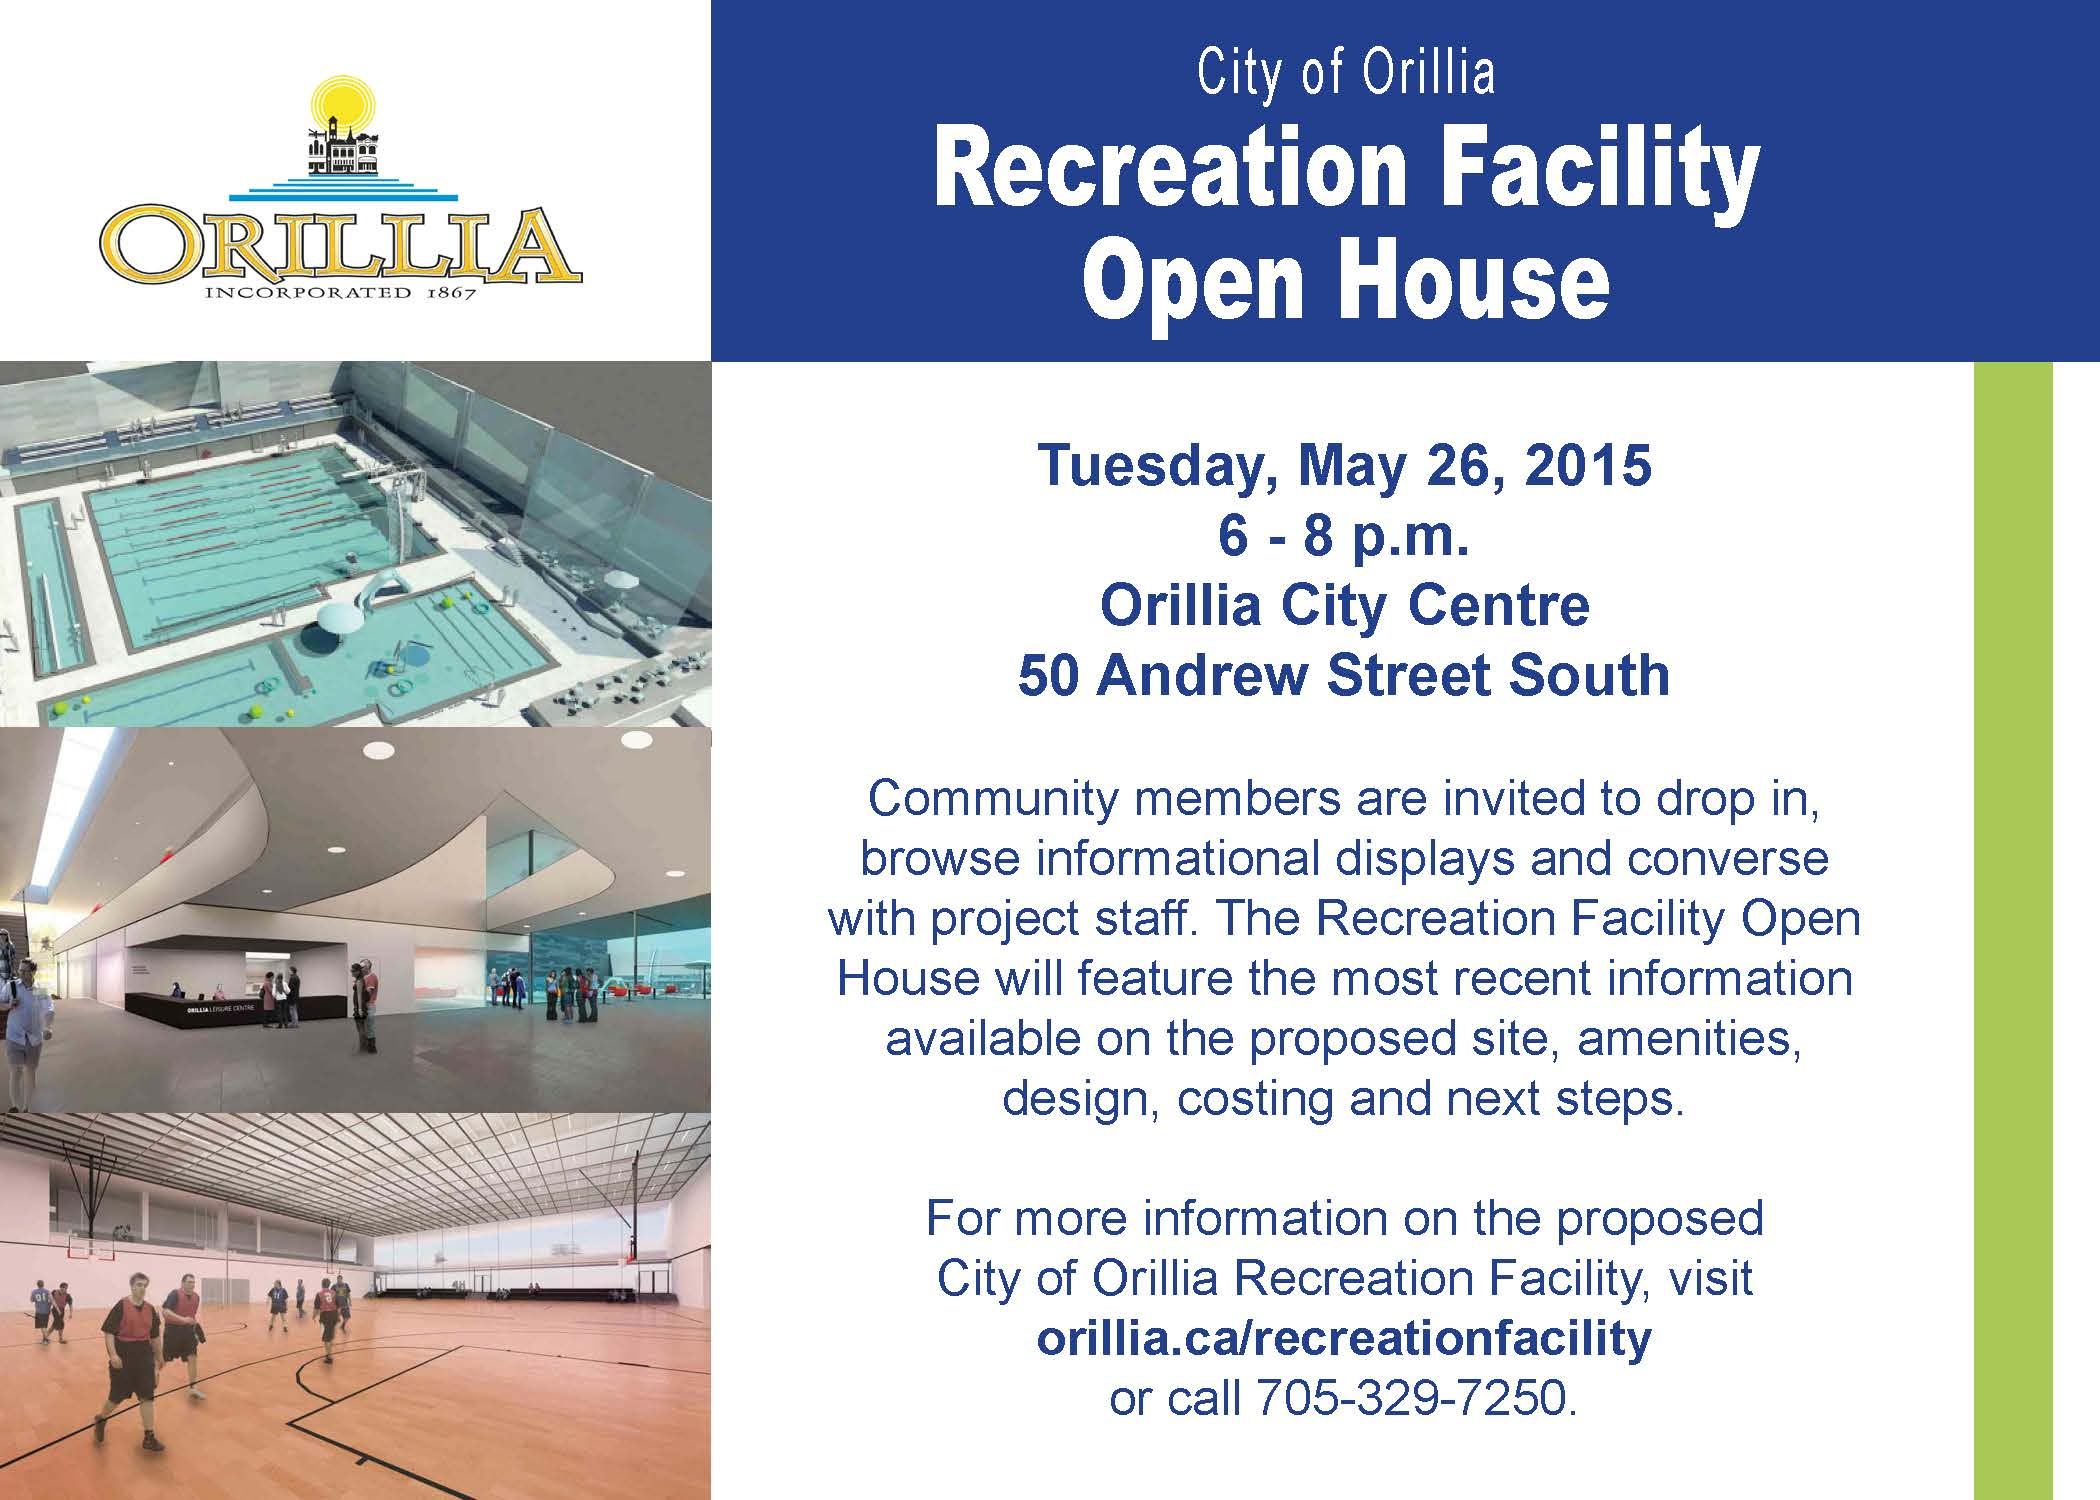 Invitation to the Recreation Facility Open House May 26th from 6 to 8 p.m.